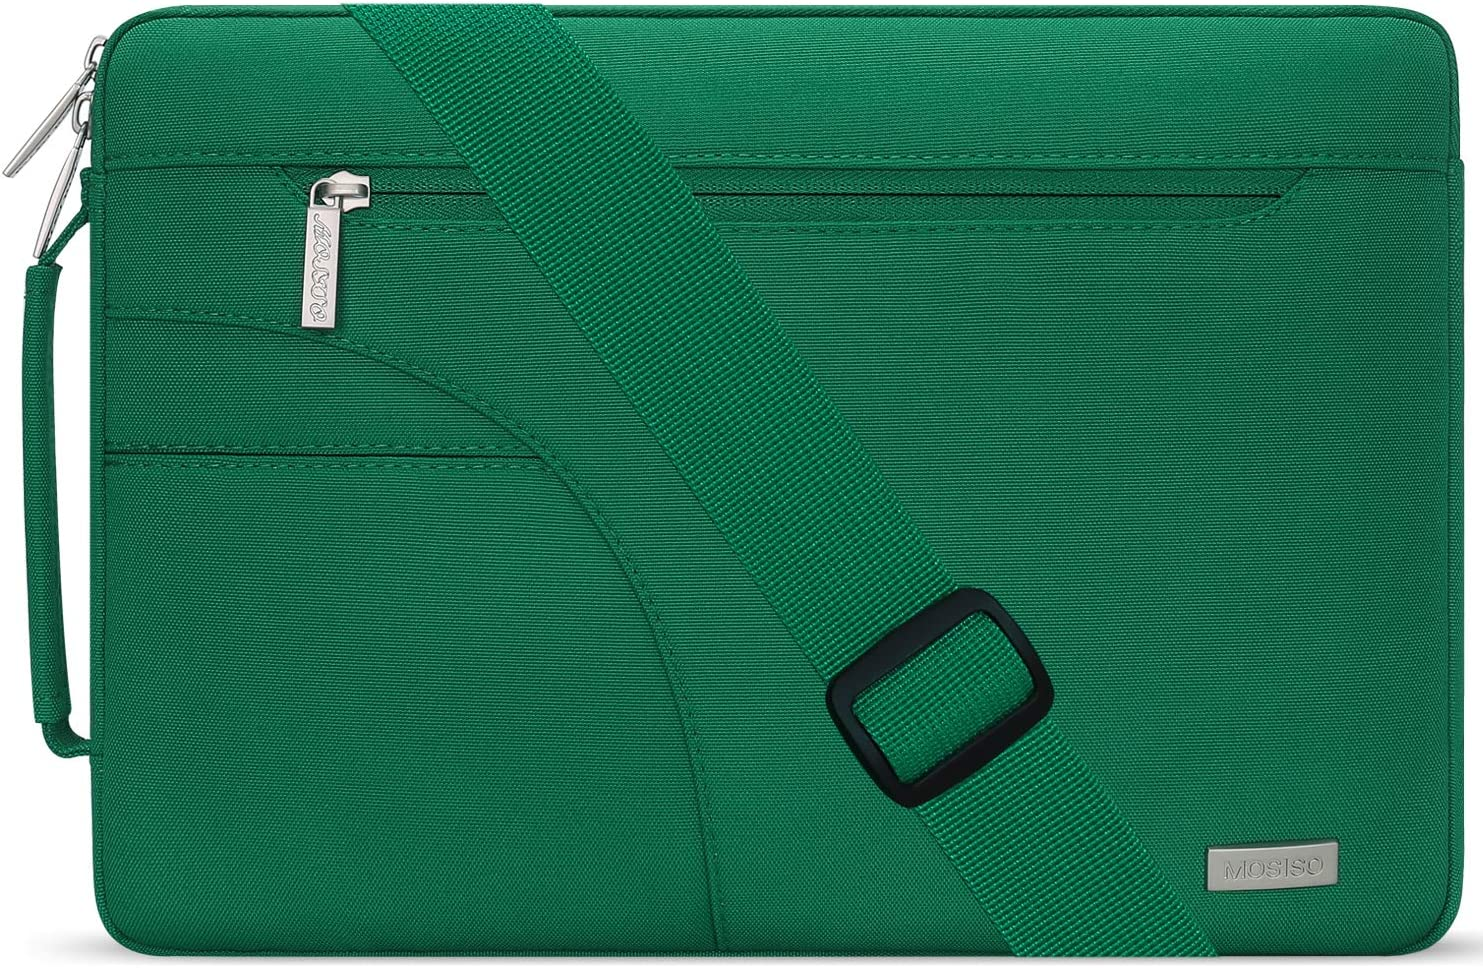 MOSISO Laptop Shoulder Bag Compatible with 13-13.3 inch MacBook Pro, MacBook Air, Notebook Computer, Polyester Briefcase Sleeve with Side Handle, Peacock Green